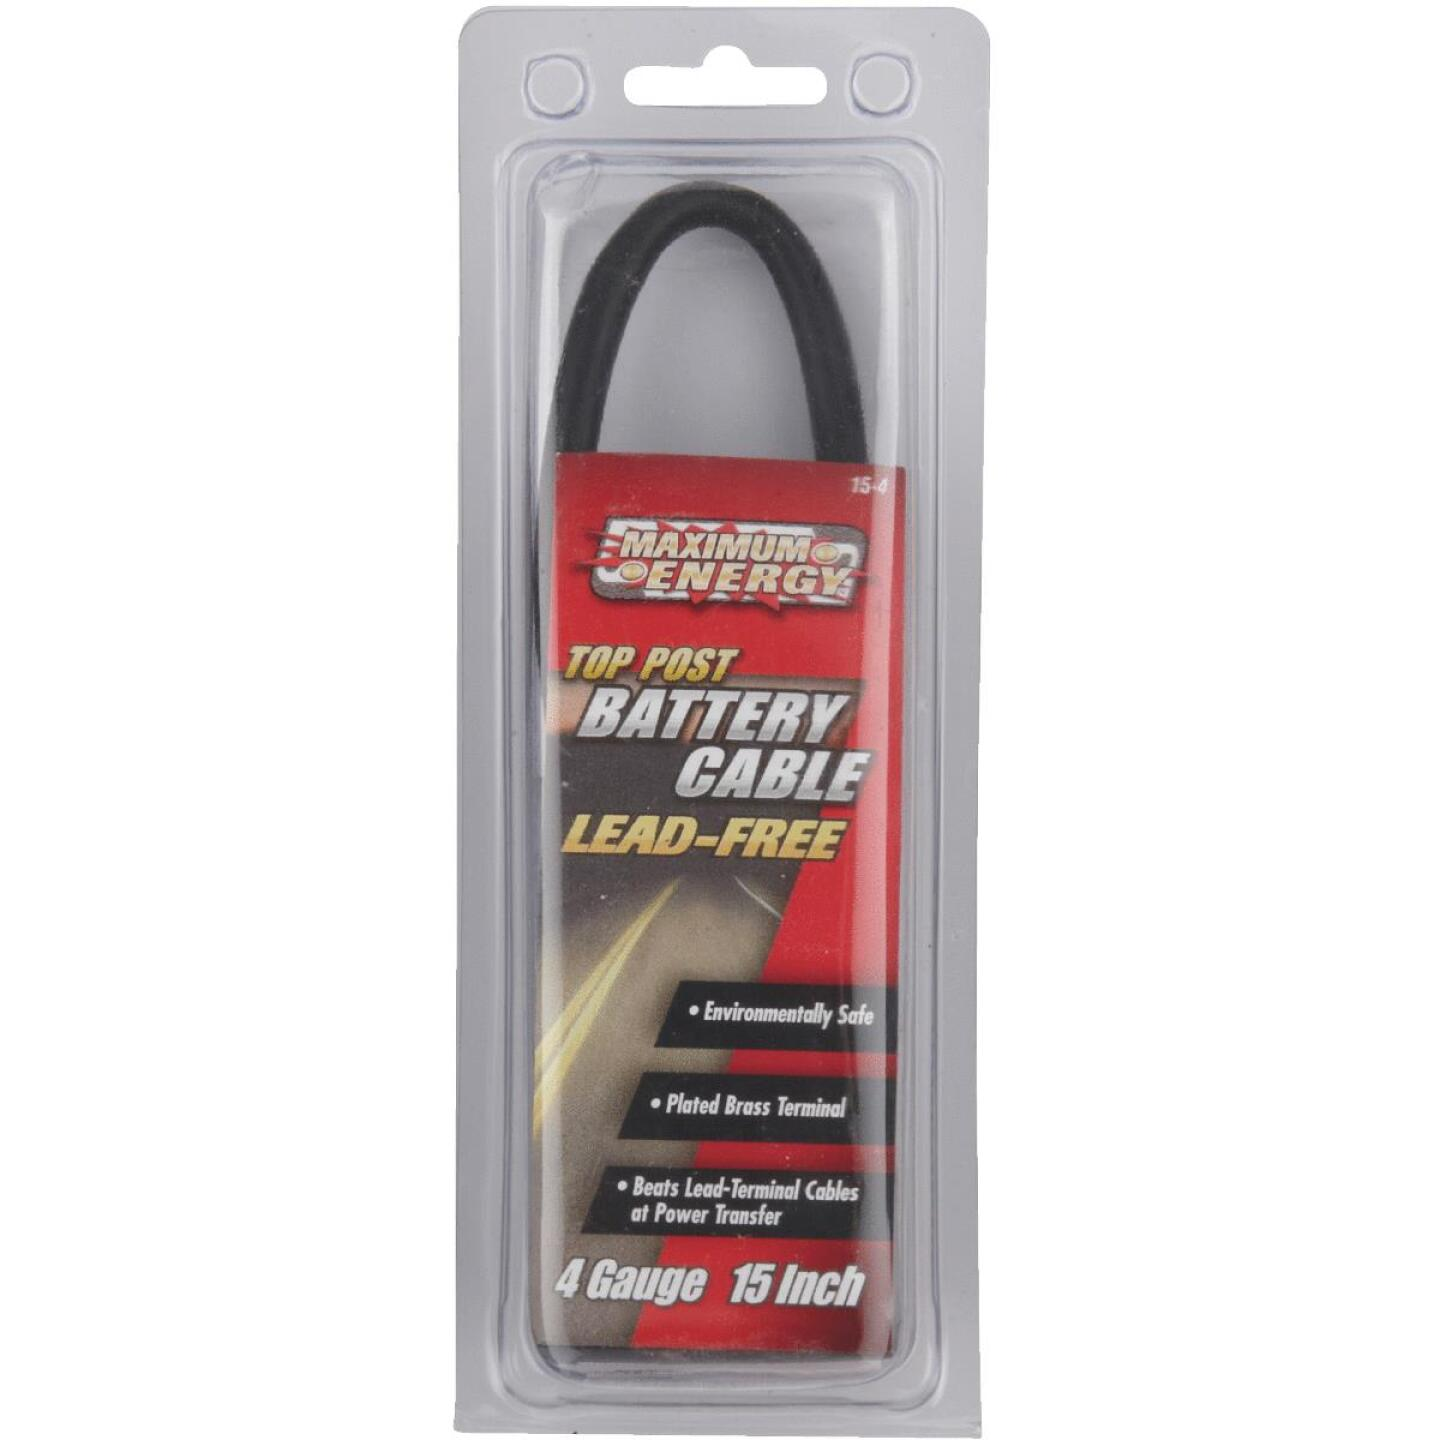 Road Power 15 In. 4 Gauge Top Post Battery Cable Image 2